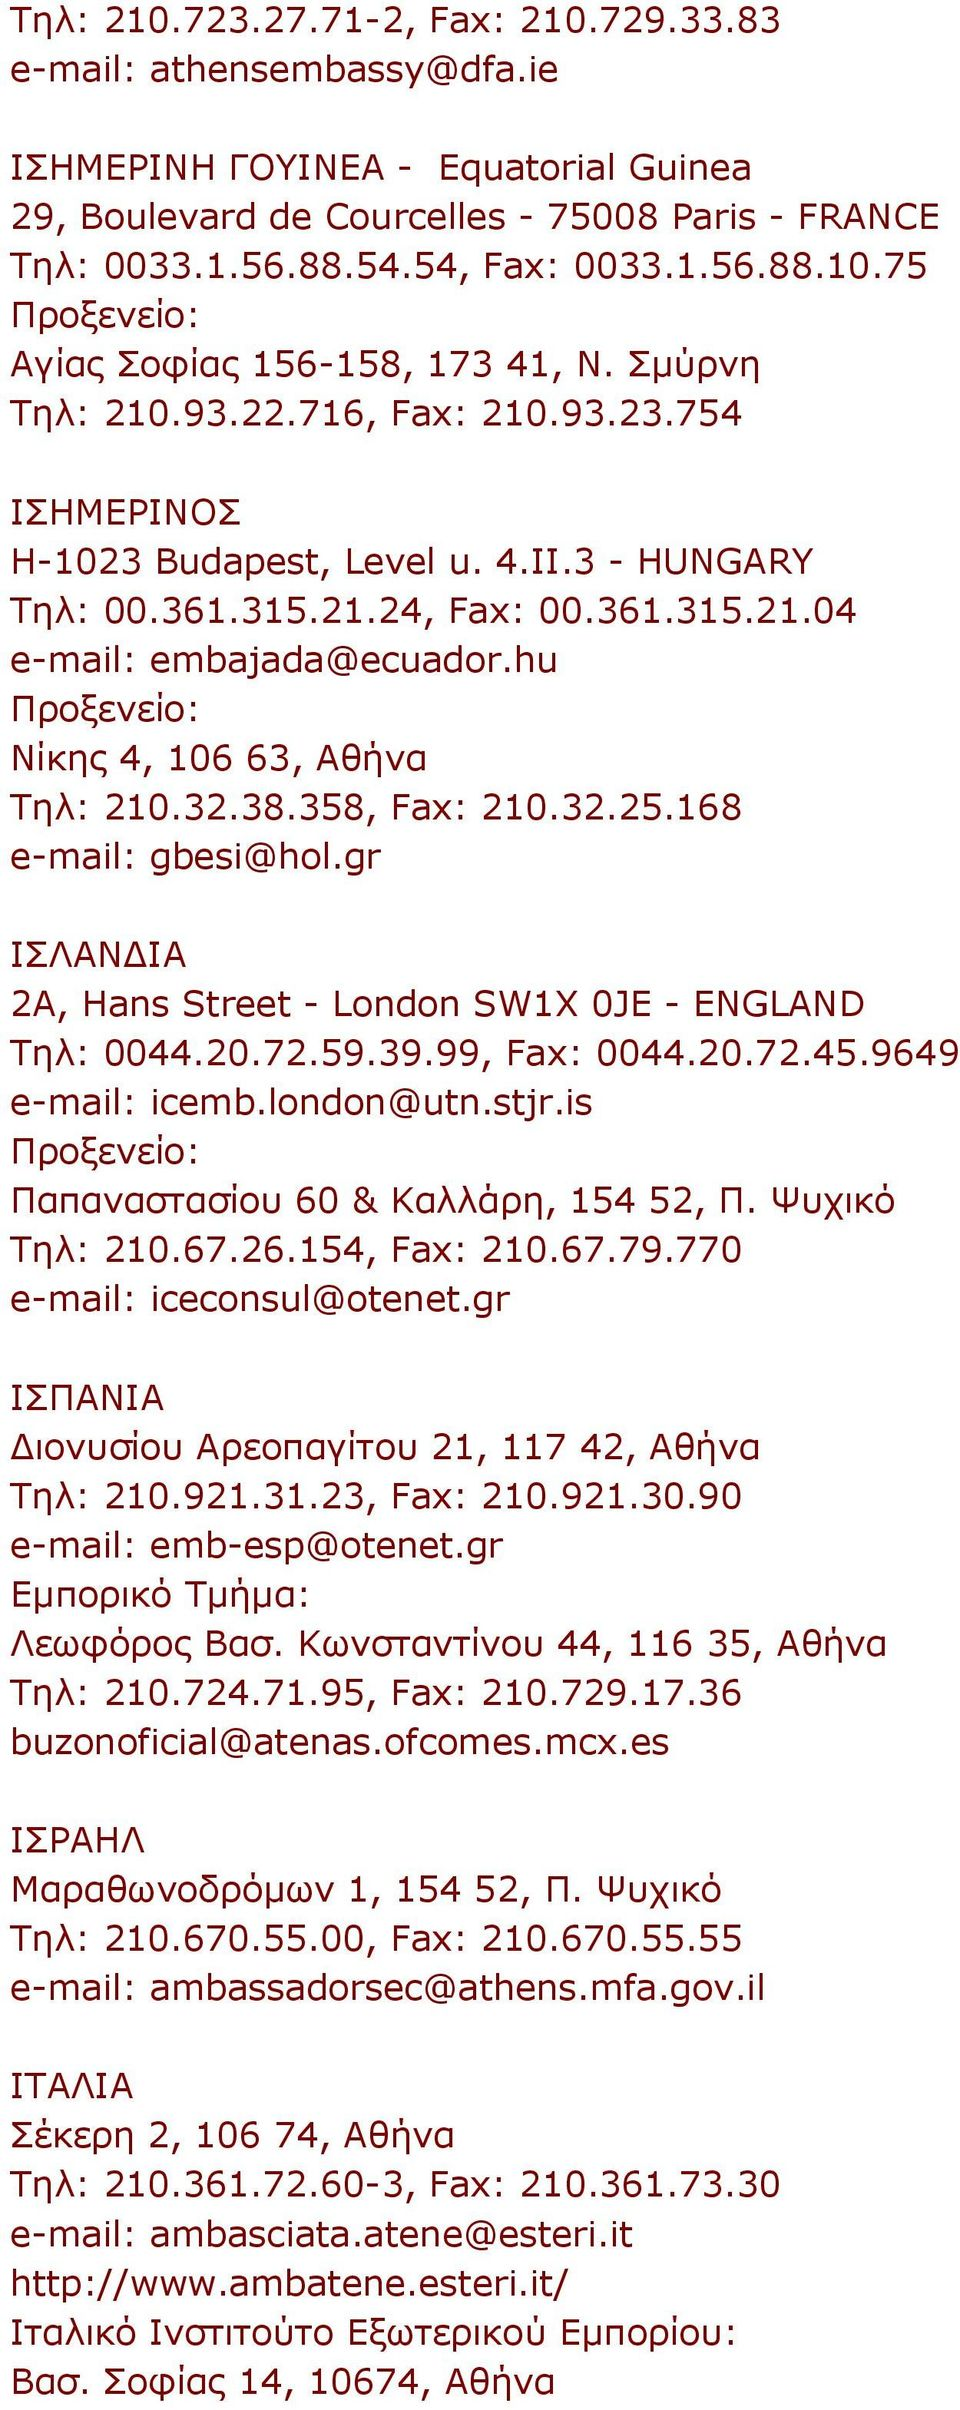 hu Νίκης 4, 106 63, Αθήνα Τηλ: 210.32.38.358, Fax: 210.32.25.168 e-mail: gbesi@hol.gr ΙΣΛΑΝΔΙΑ 2A, Hans Street - London SW1X 0JE - ENGLAND Τηλ: 0044.20.72.59.39.99, Fax: 0044.20.72.45.